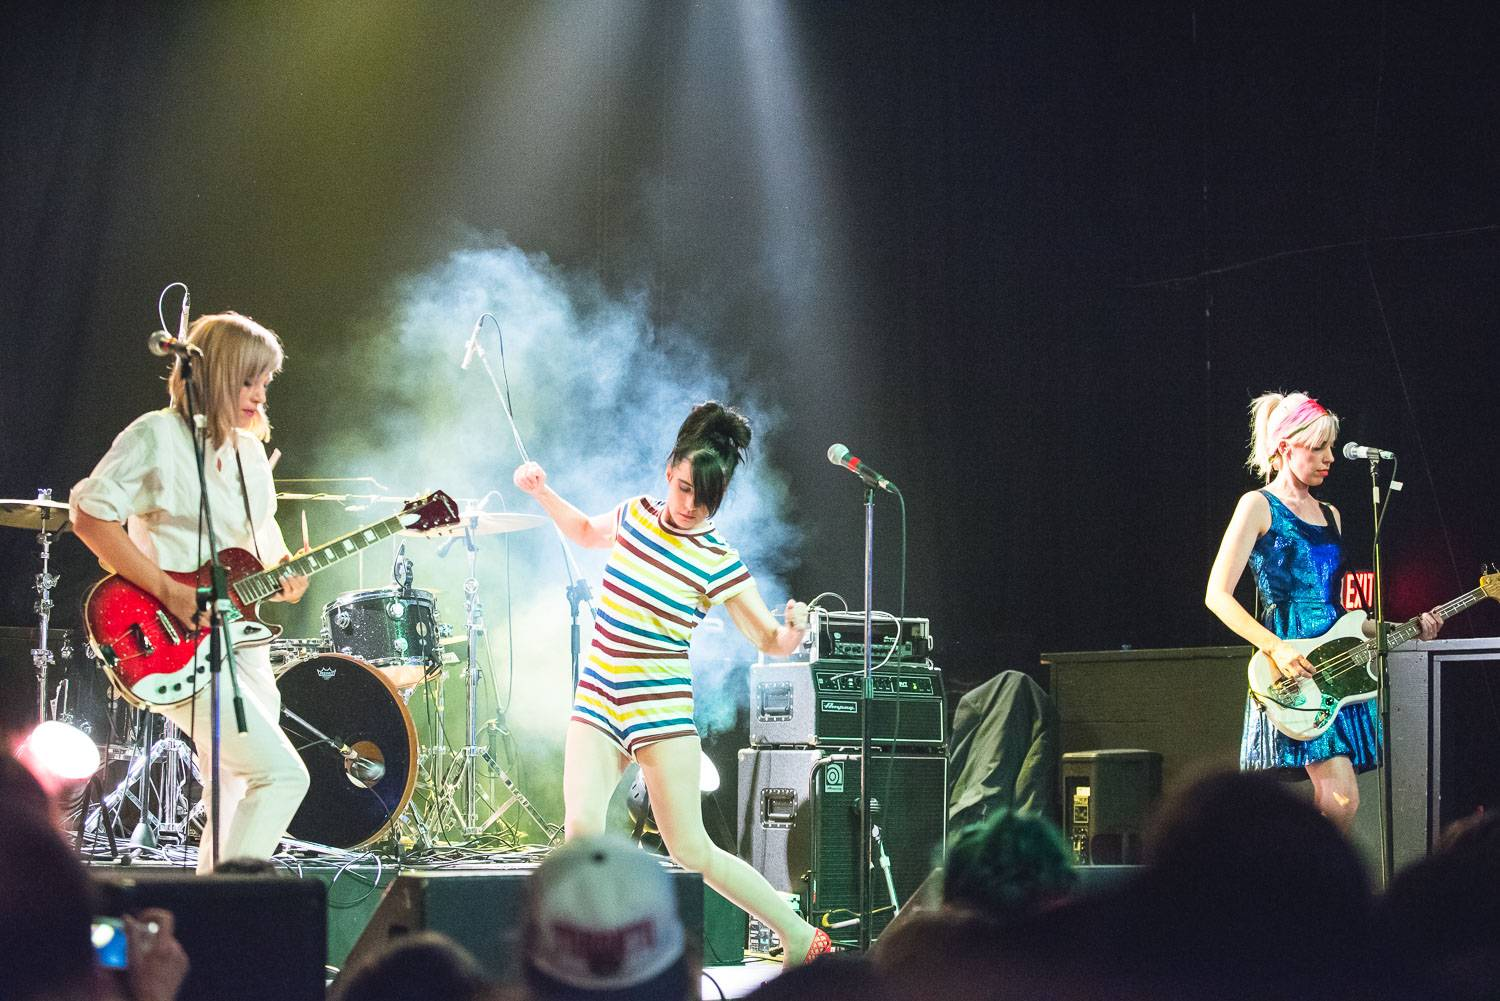 Julie Ruin at the Rickshaw Theatre, Vancouver, Oct. 7 2016. Pavel Boiko photo.